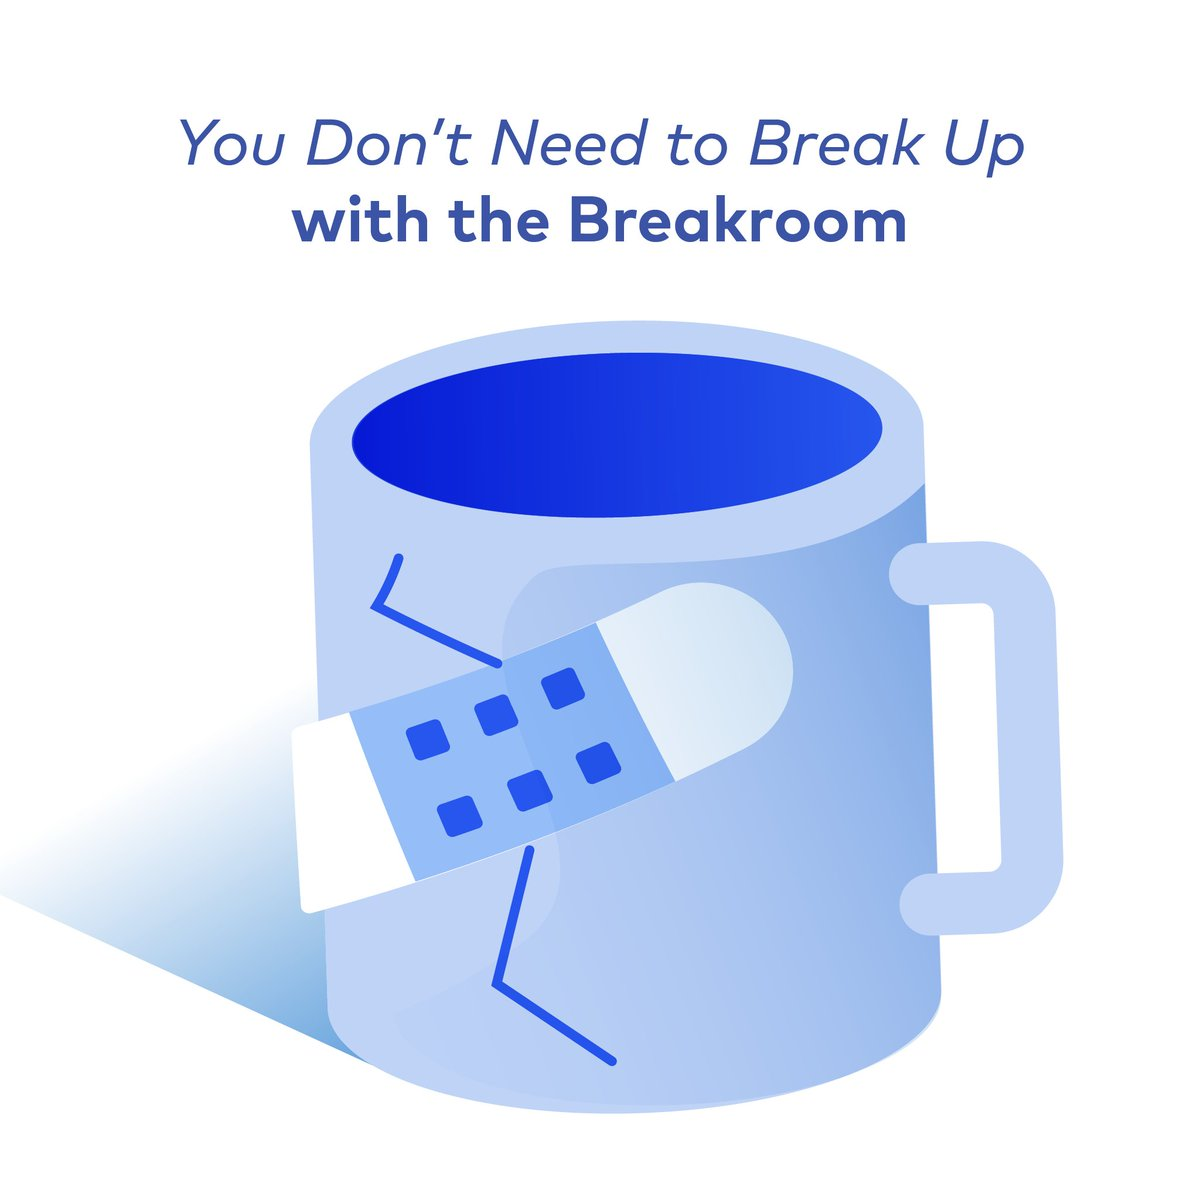 Thinking about shutting down your breakroom due to COVID-19? Think again! Get ideas for adapting your breakroom for #COVID-19 here: https://t.co/1w4tVsAVH1 https://t.co/u890Zga0E2